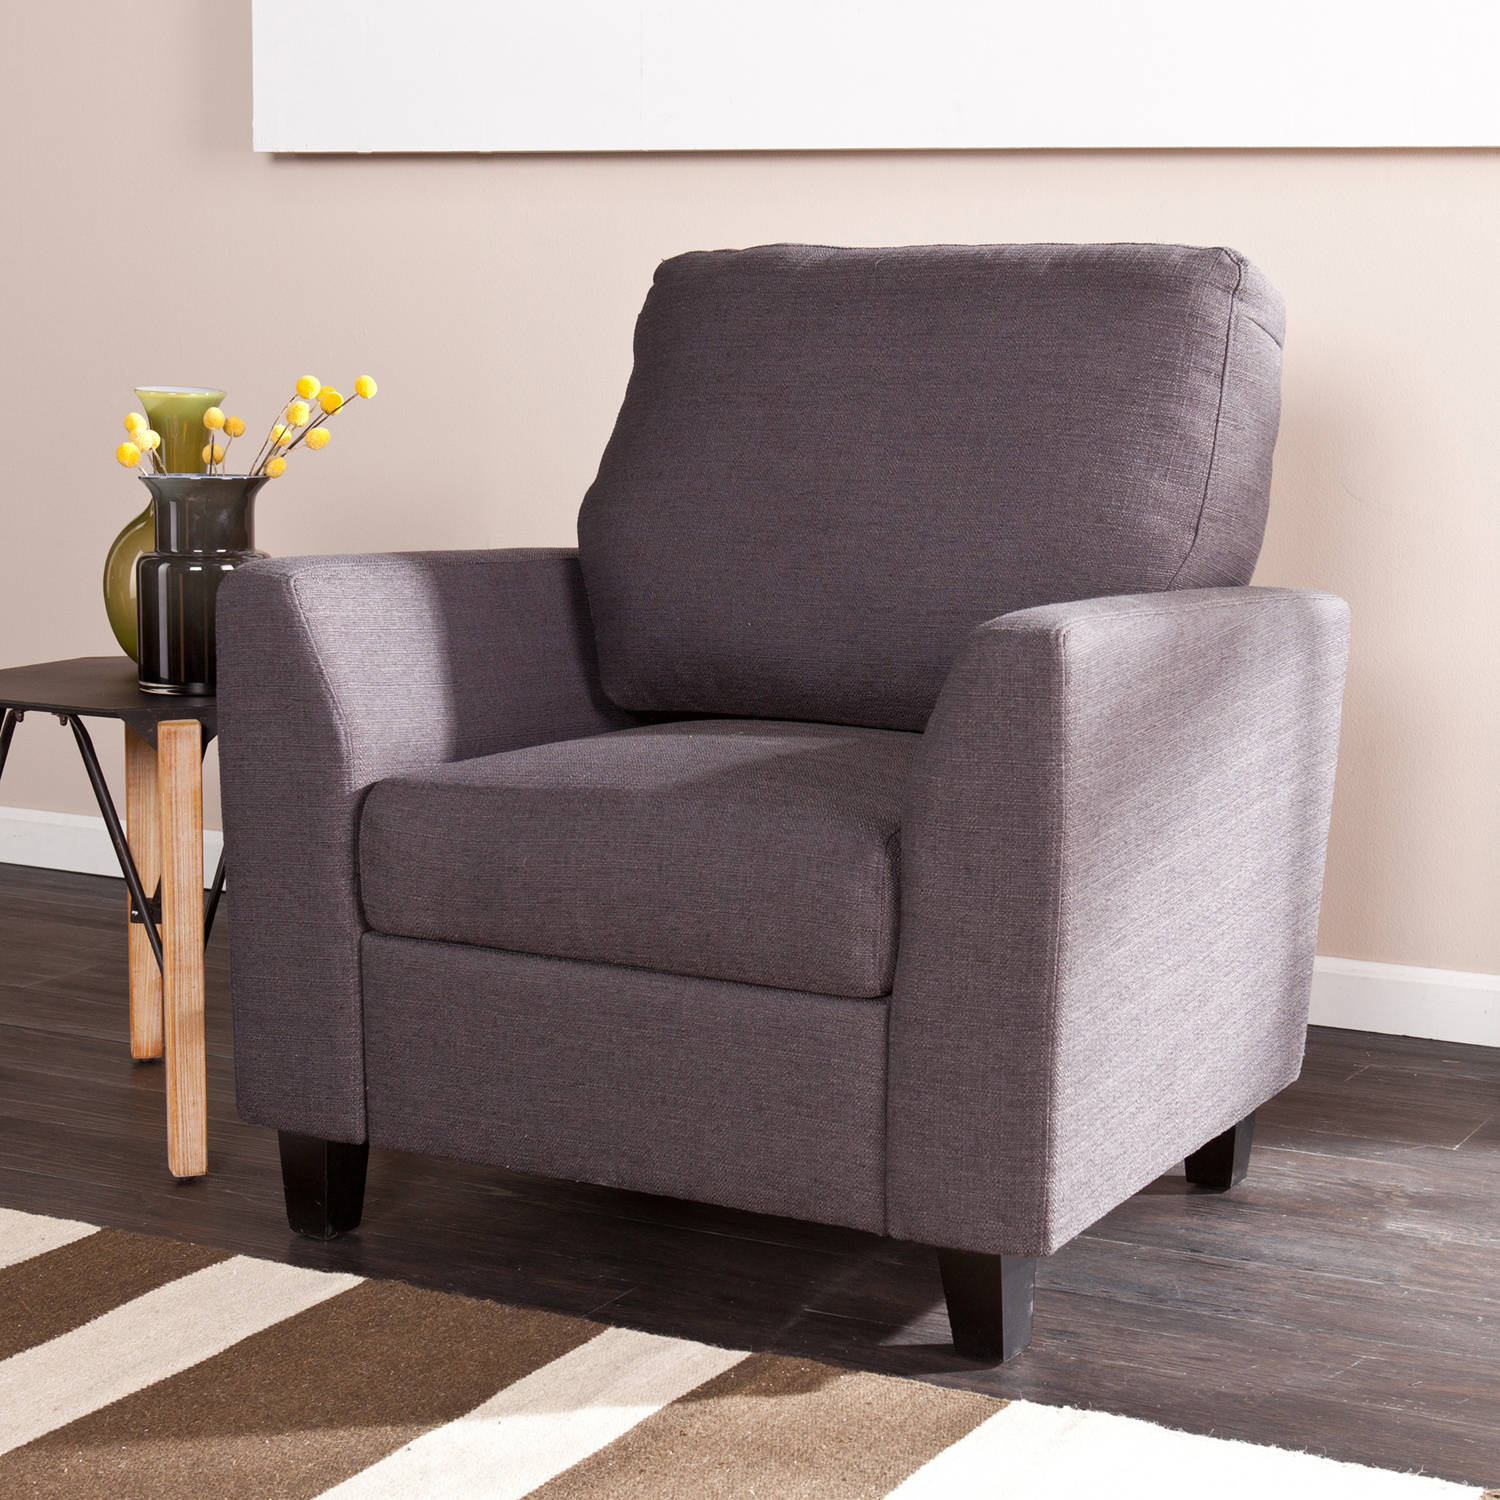 Holly and Martin Plushen Chair, Anthracite